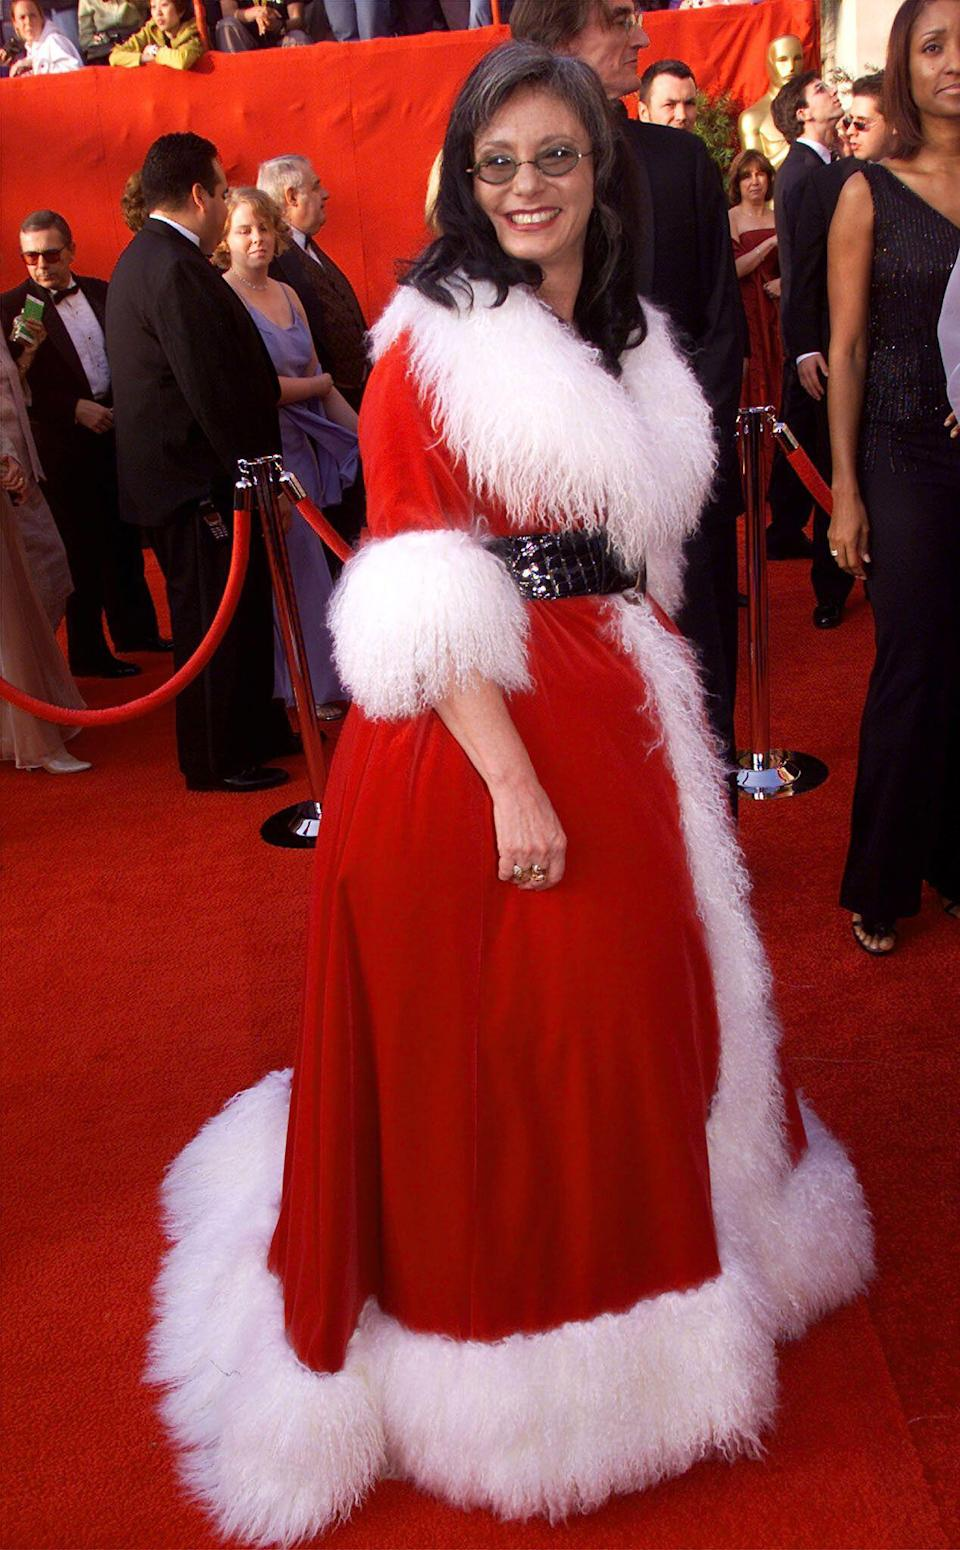 Nominated for best costume design for <em>How the Grinch Stole Christmas</em>, Rita Ryack brought a little bit of holiday spirit (and Whoville) to the Oscars in 2001. She wore a red robe coat trimmed with white shaggy fur—something Mrs. Claus or Martha May Whovier would wear, rather than a Hollywood veteran. She gets an A+ for dedication.